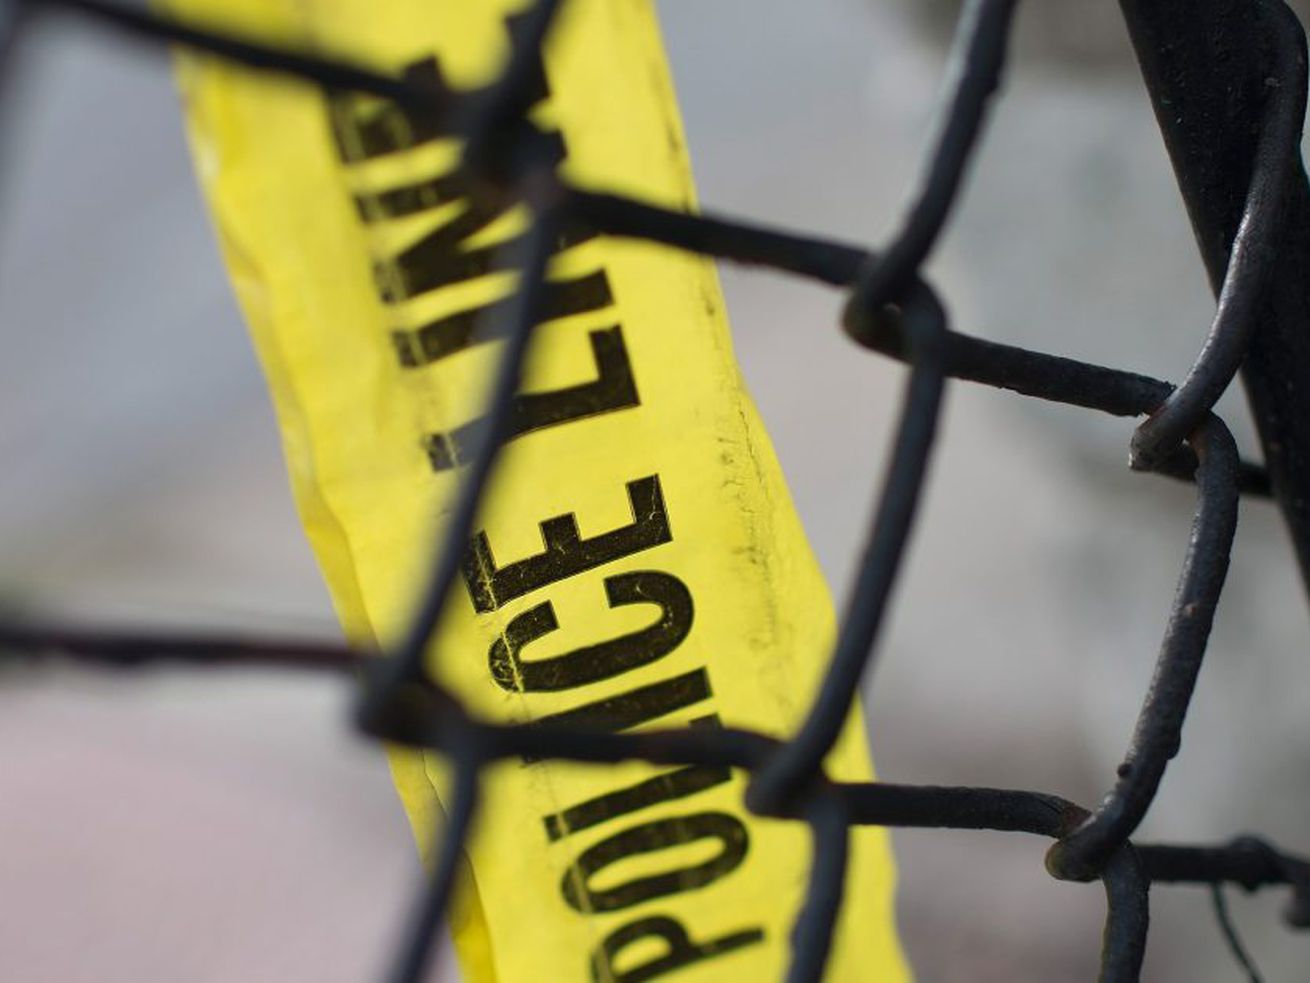 A 37-year-old man shot two people he was arguing with in the 5500 block of North Monitor Avenue.